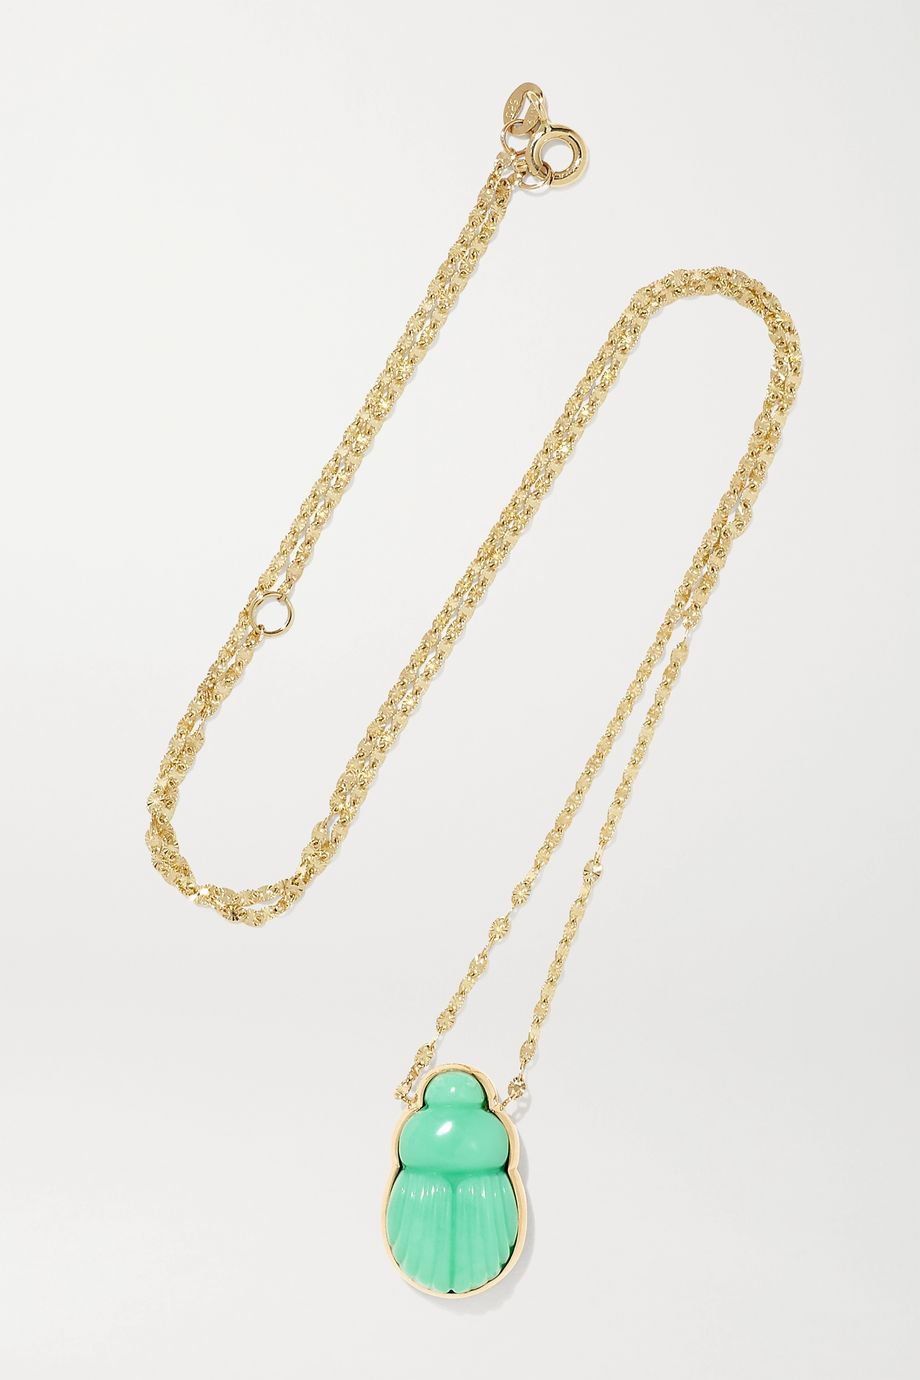 Lito Daria 14-karat gold chrysoprase necklace